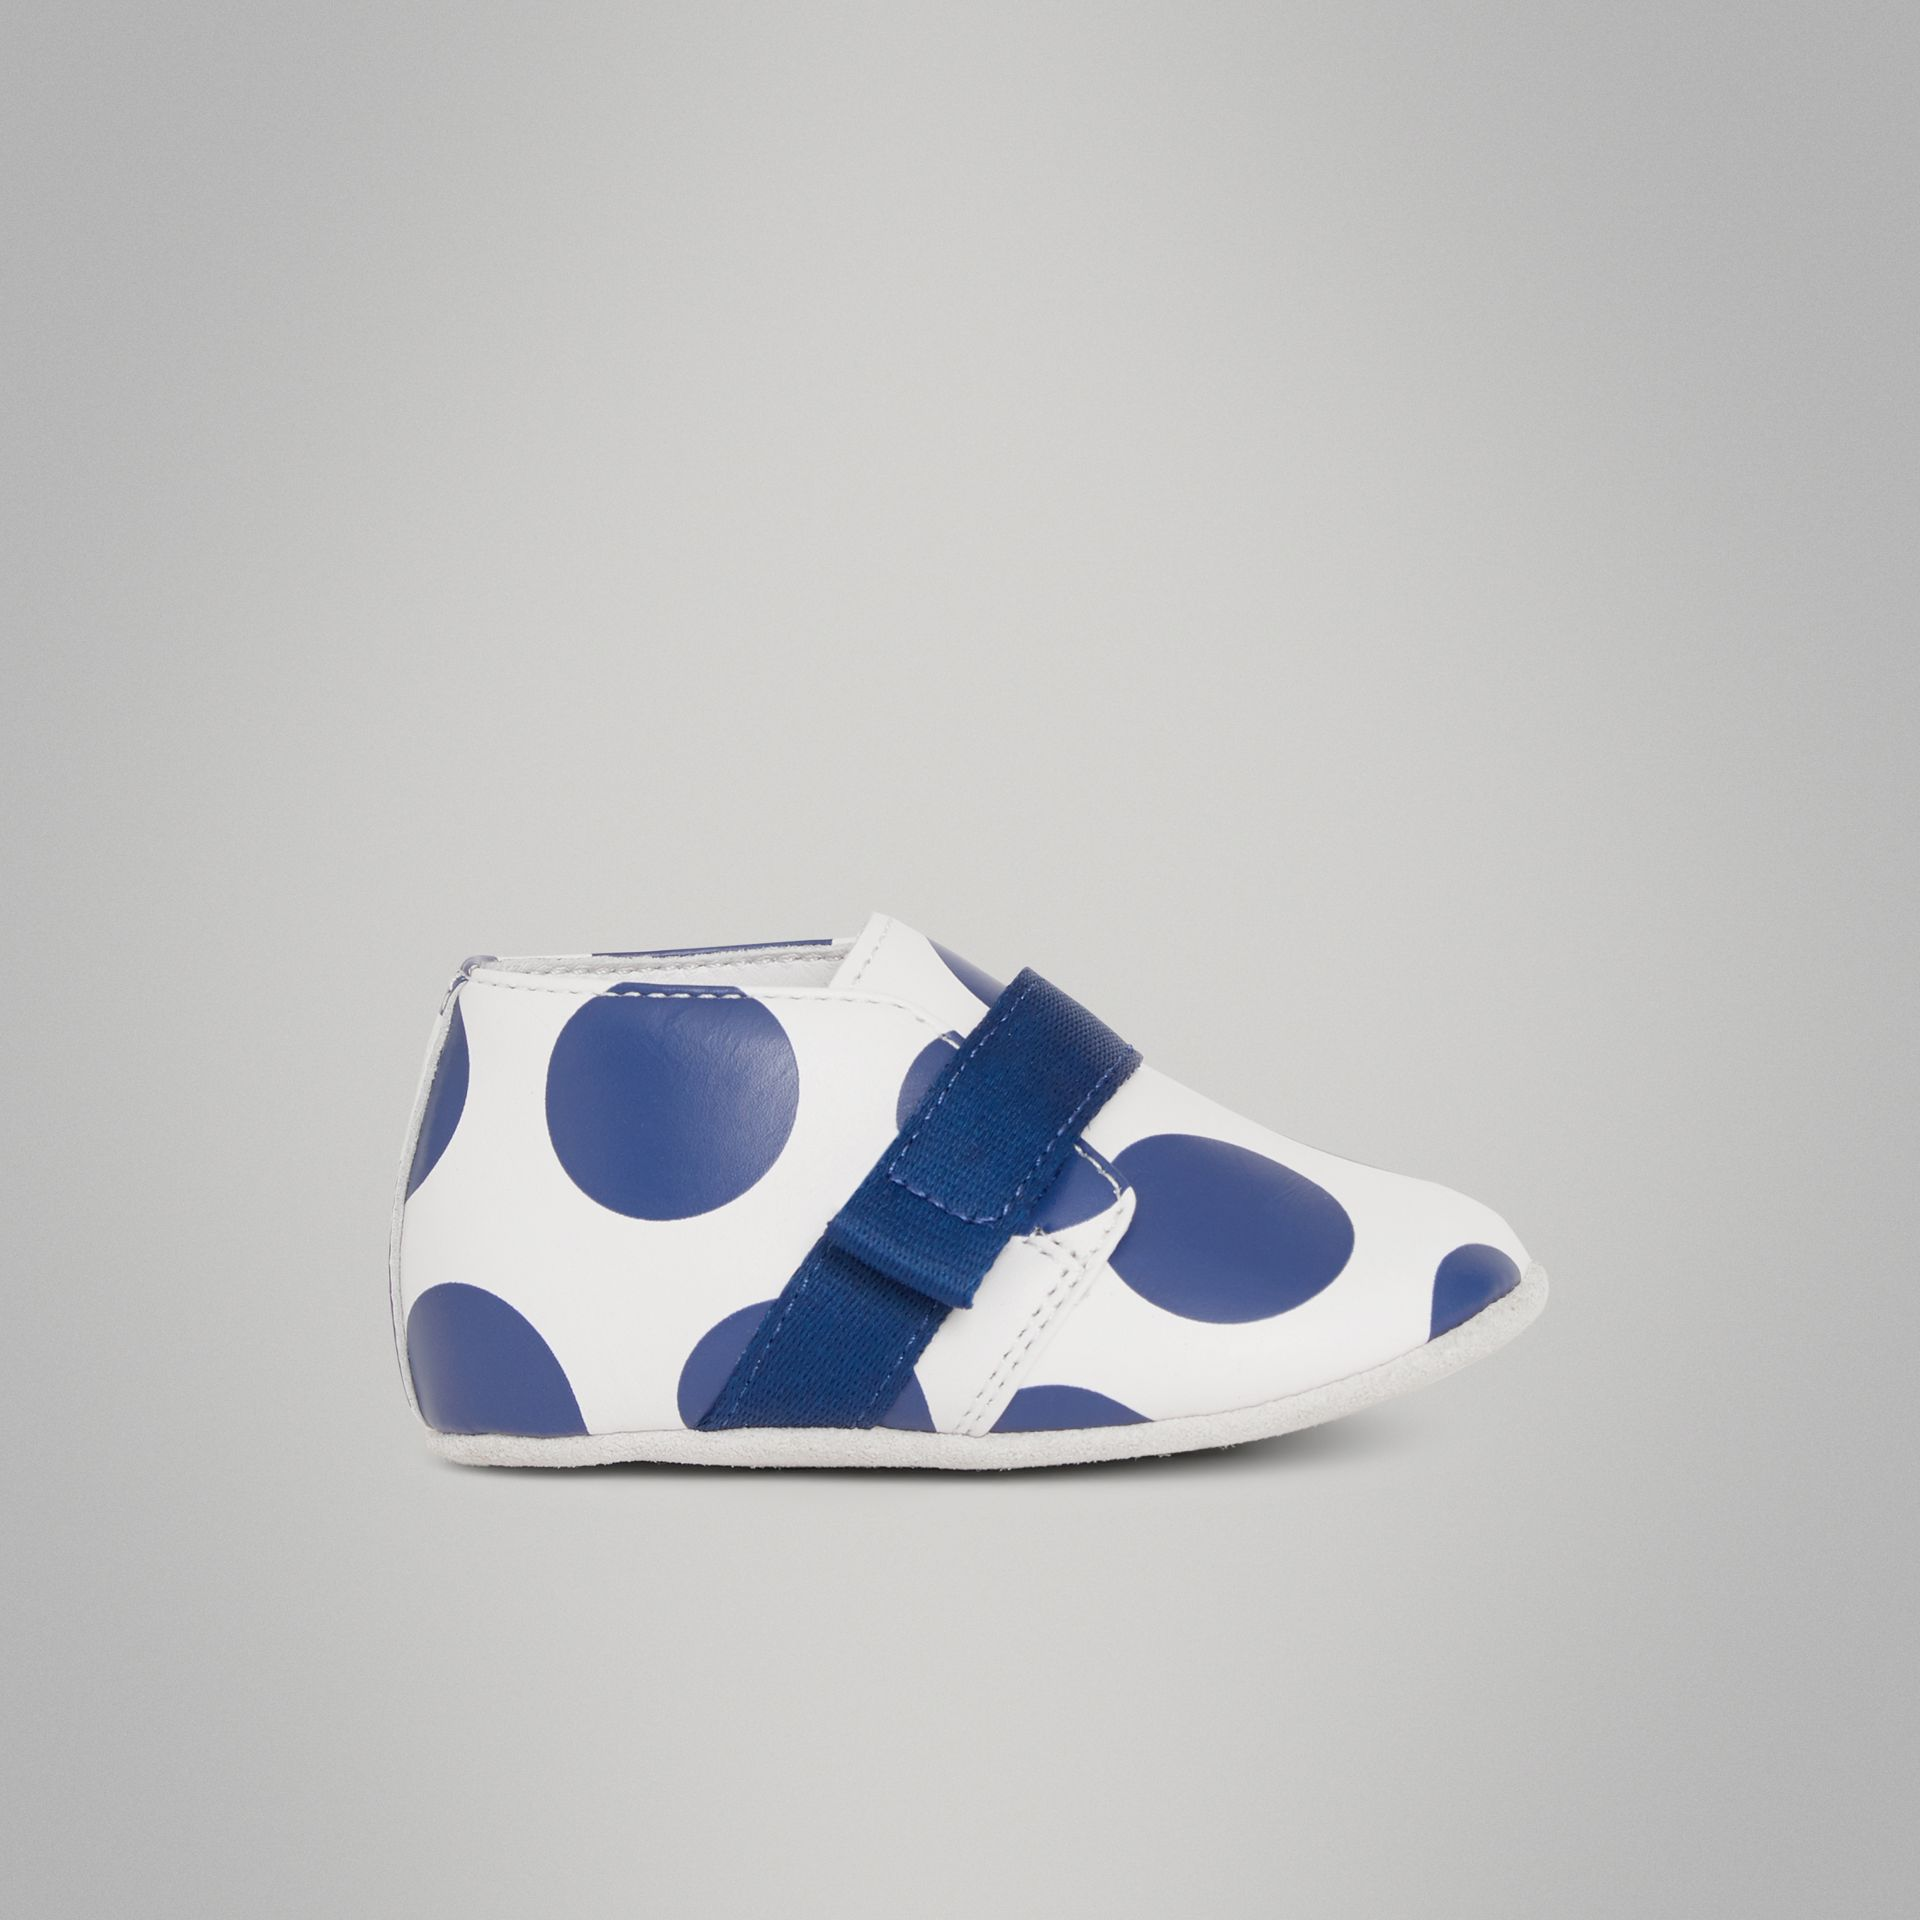 Spot Print Leather Shoes in Bright Blue - Children | Burberry - gallery image 3